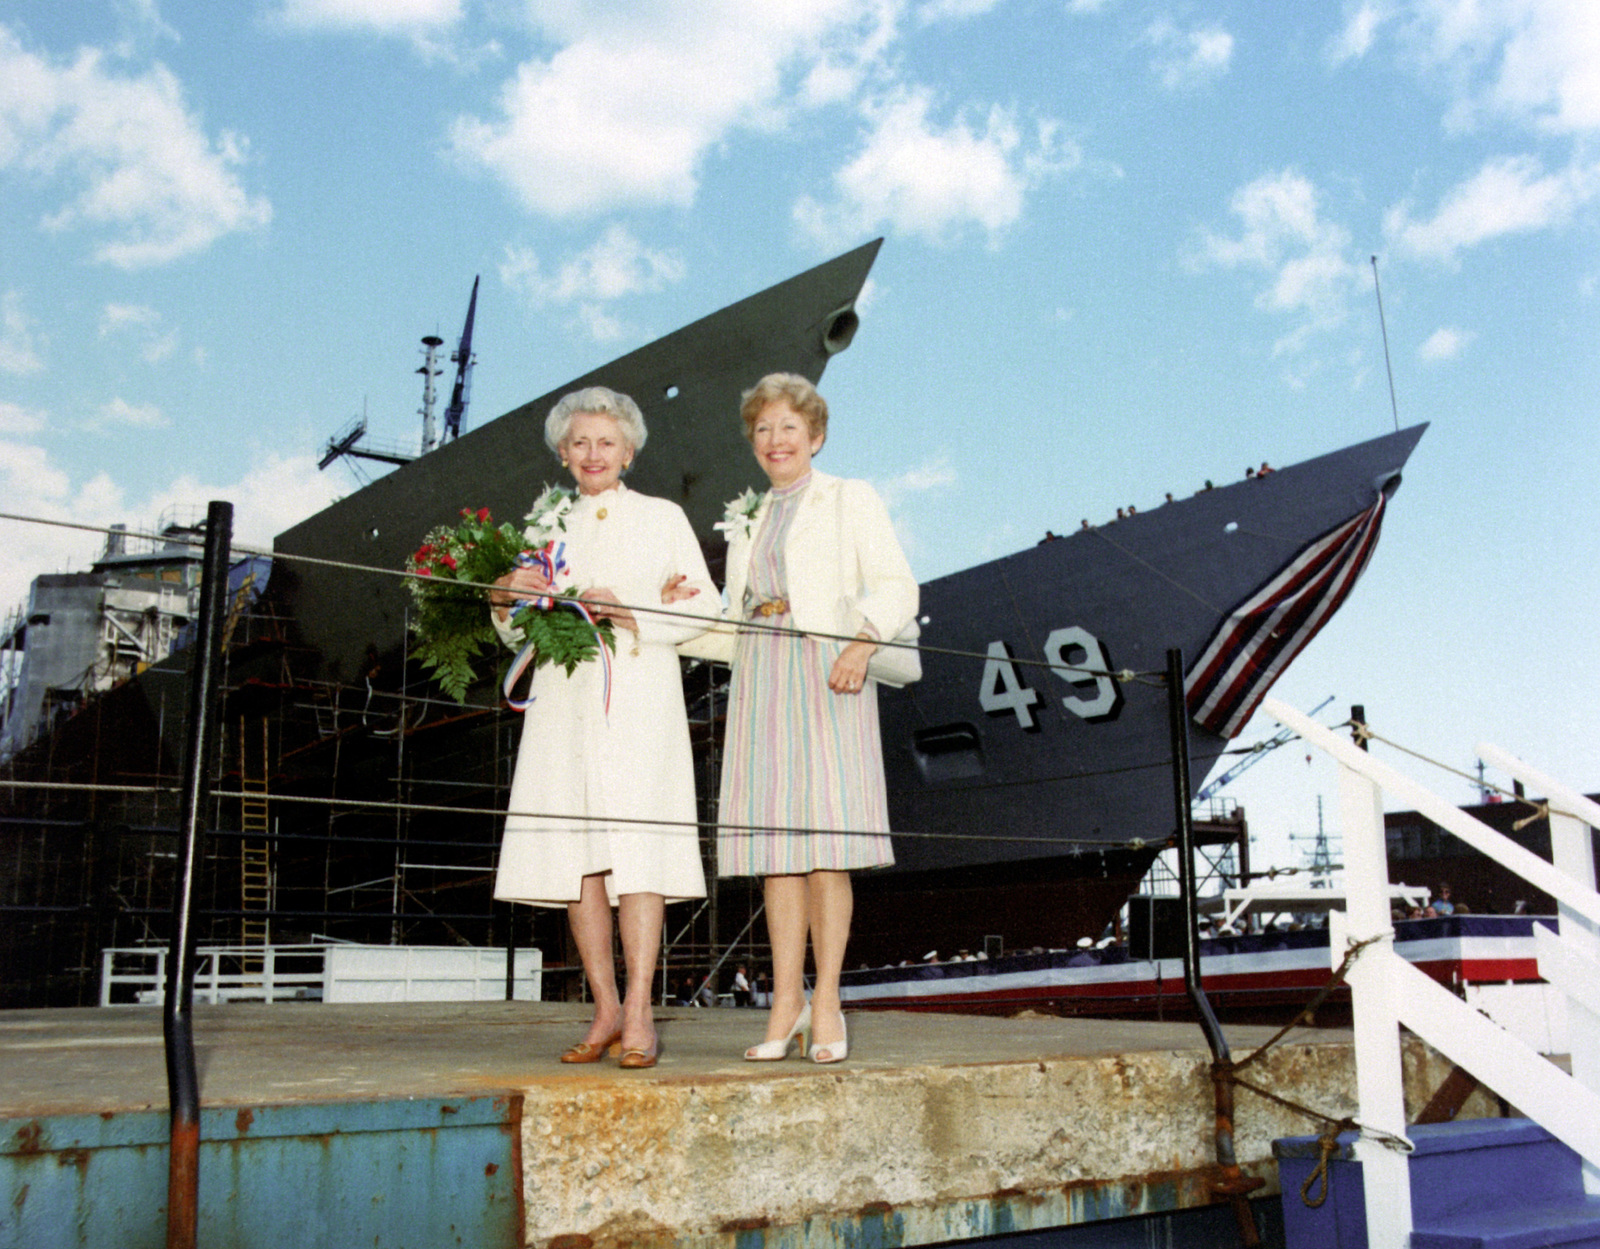 Edna D. Woodruff, left, sponsor of the guded missile frigate ROBERT G. BRADLEY (FFG-49) and Sybil Godfrey Geiger, matron of honor, stand near the ship's bow during the launching ceremony